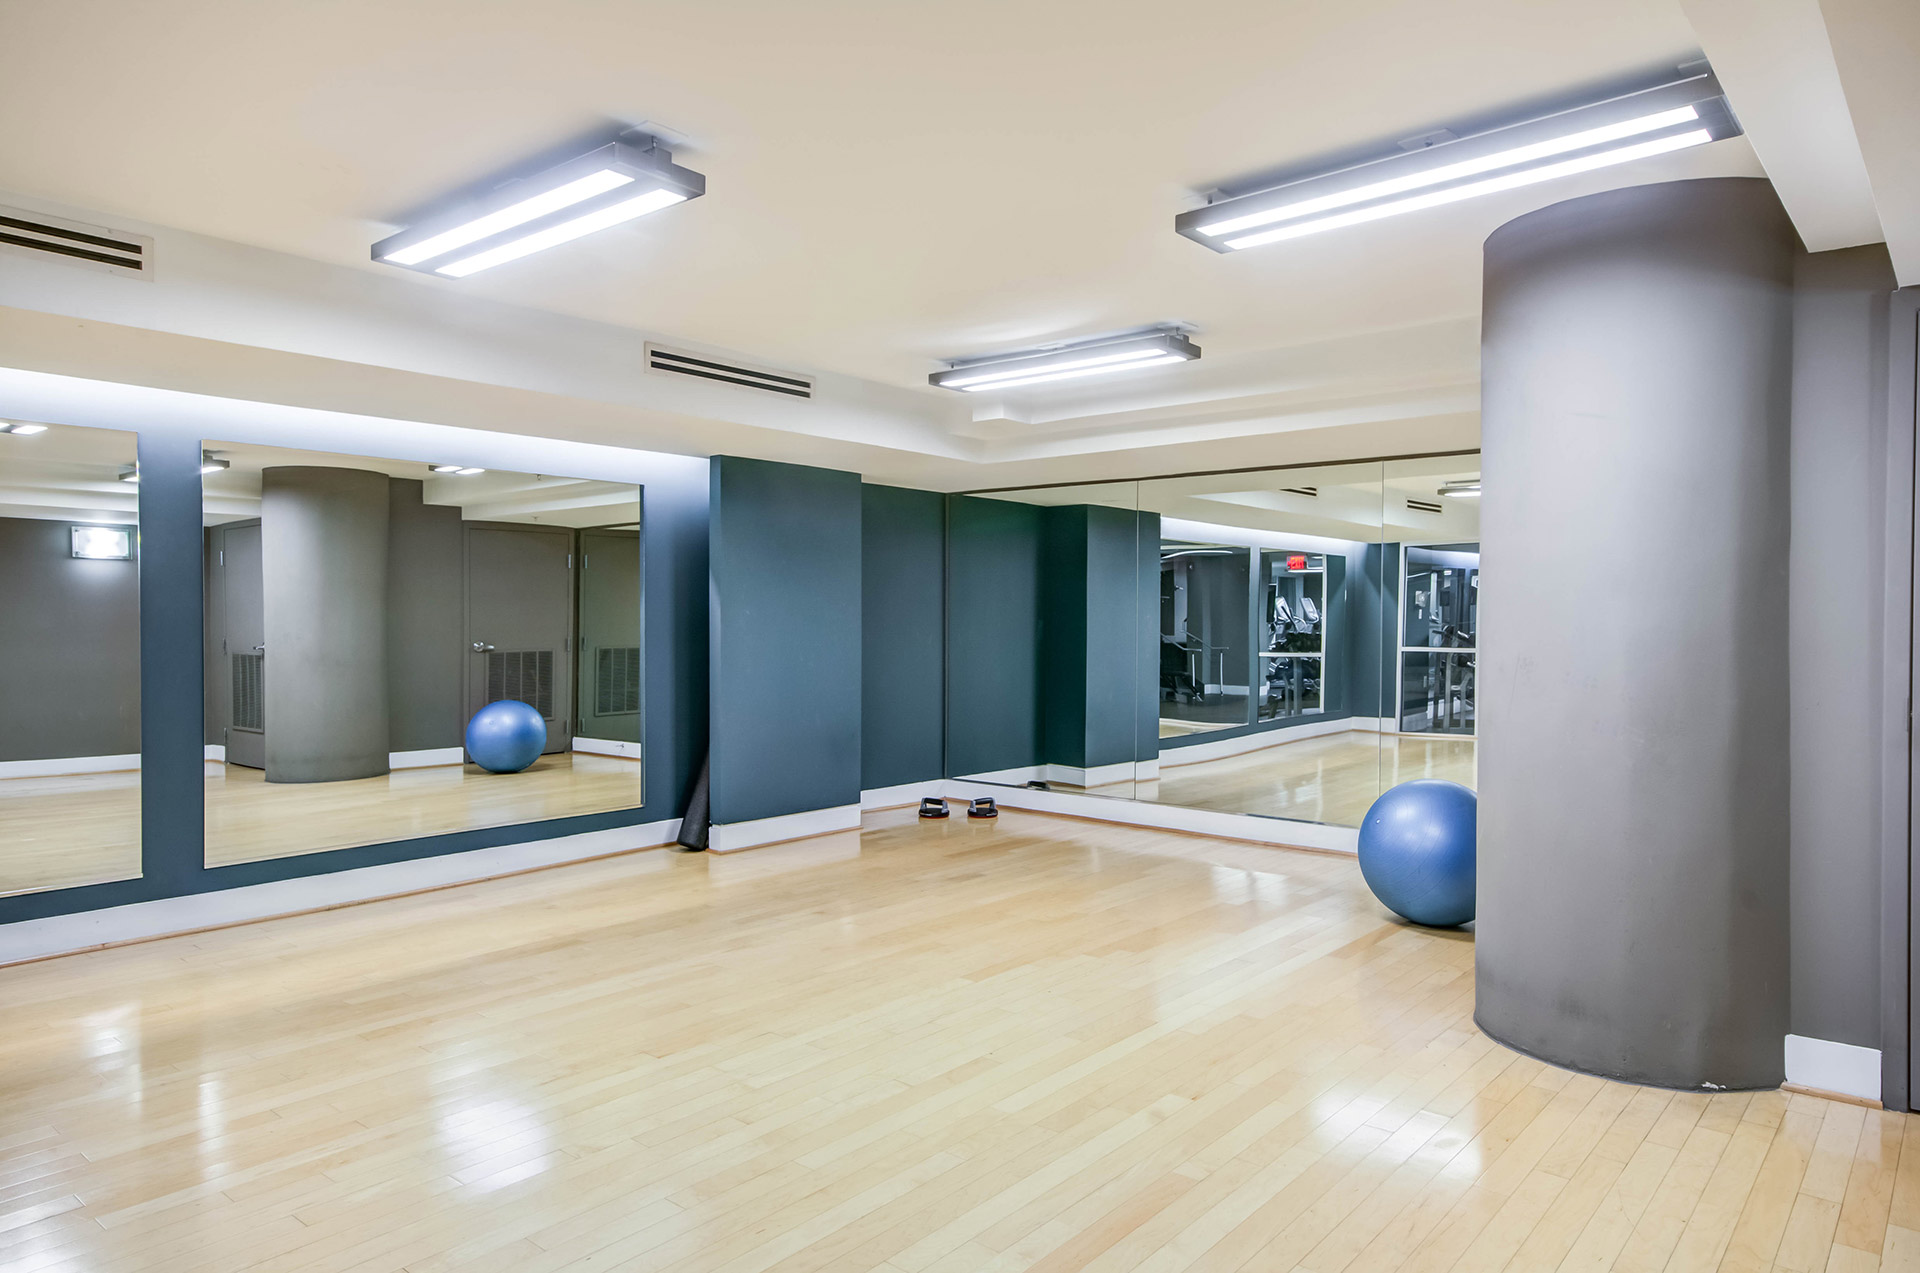 Clean and bright yoga and stretch studio with light wood flooring, mirrored walls and basic equipment stored to the right